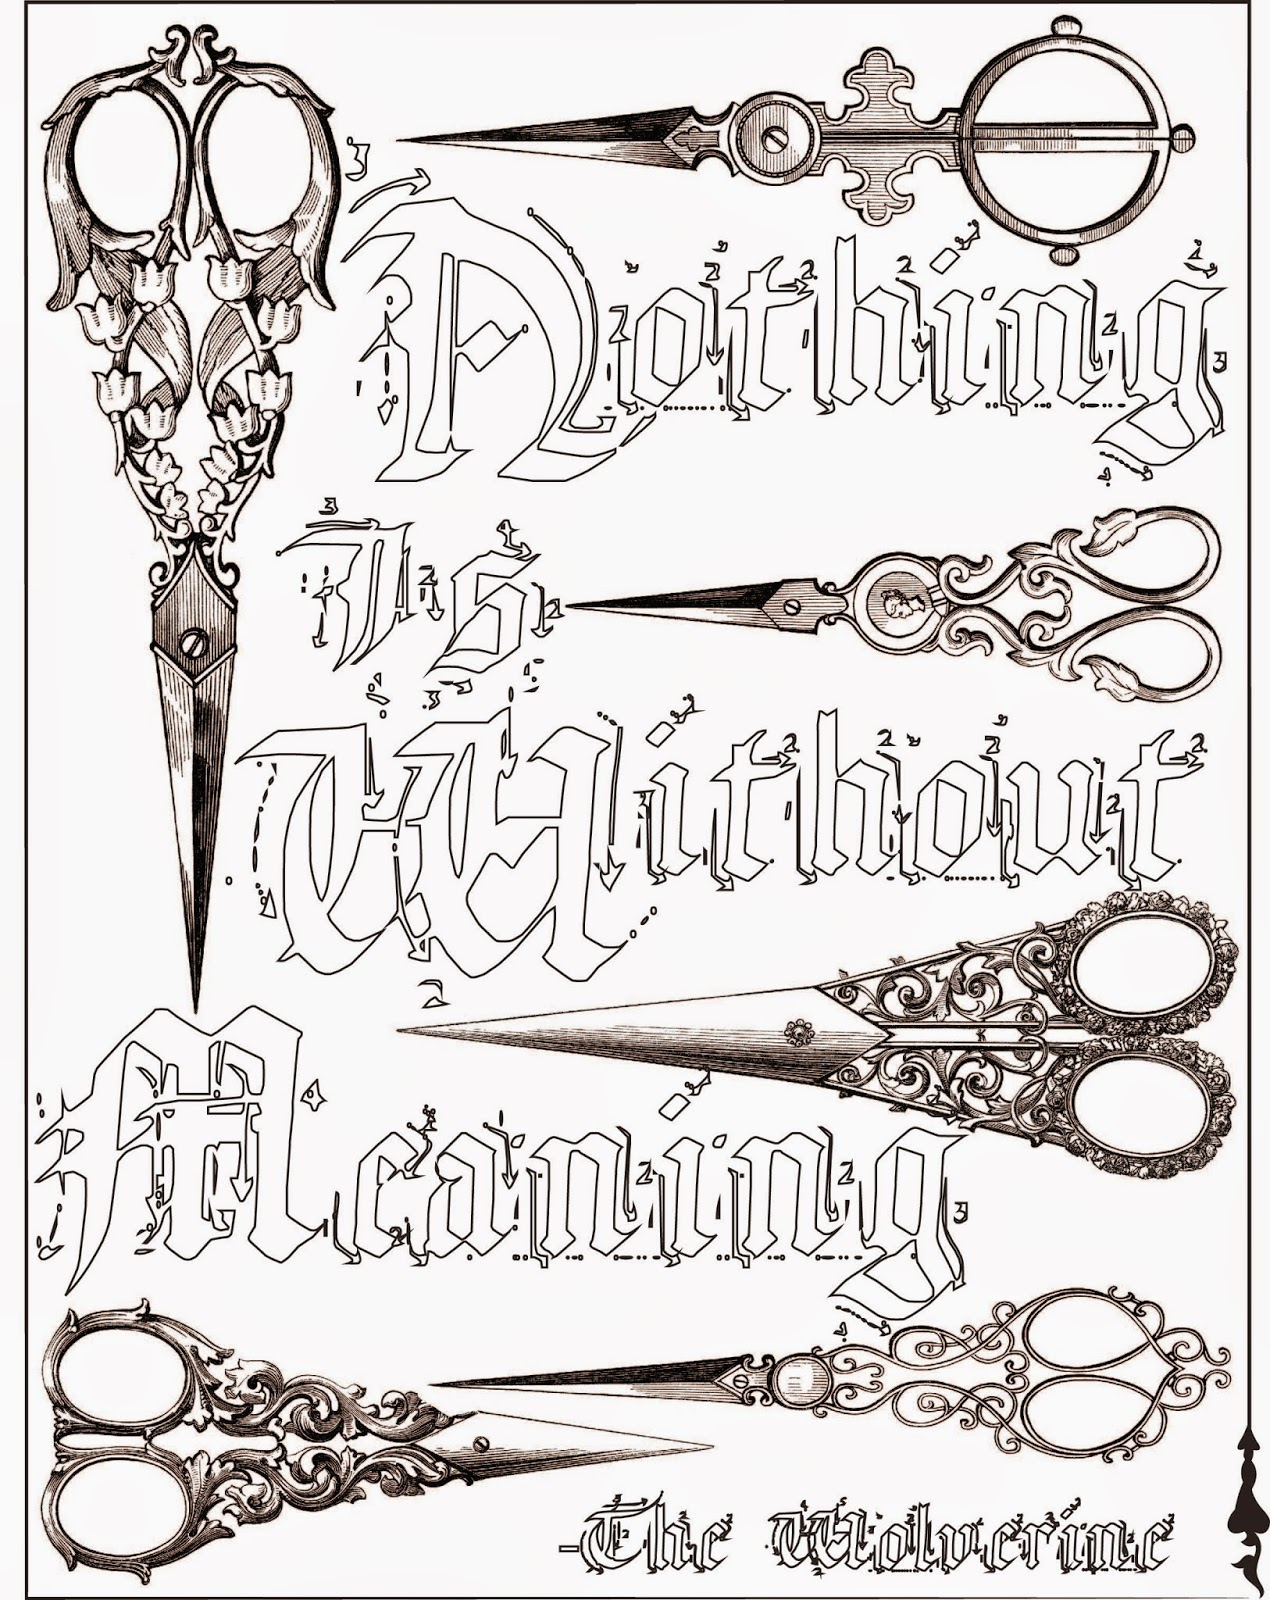 Nothing is without meaning, quote, adult coloring page, stefanie girard, scissors, art